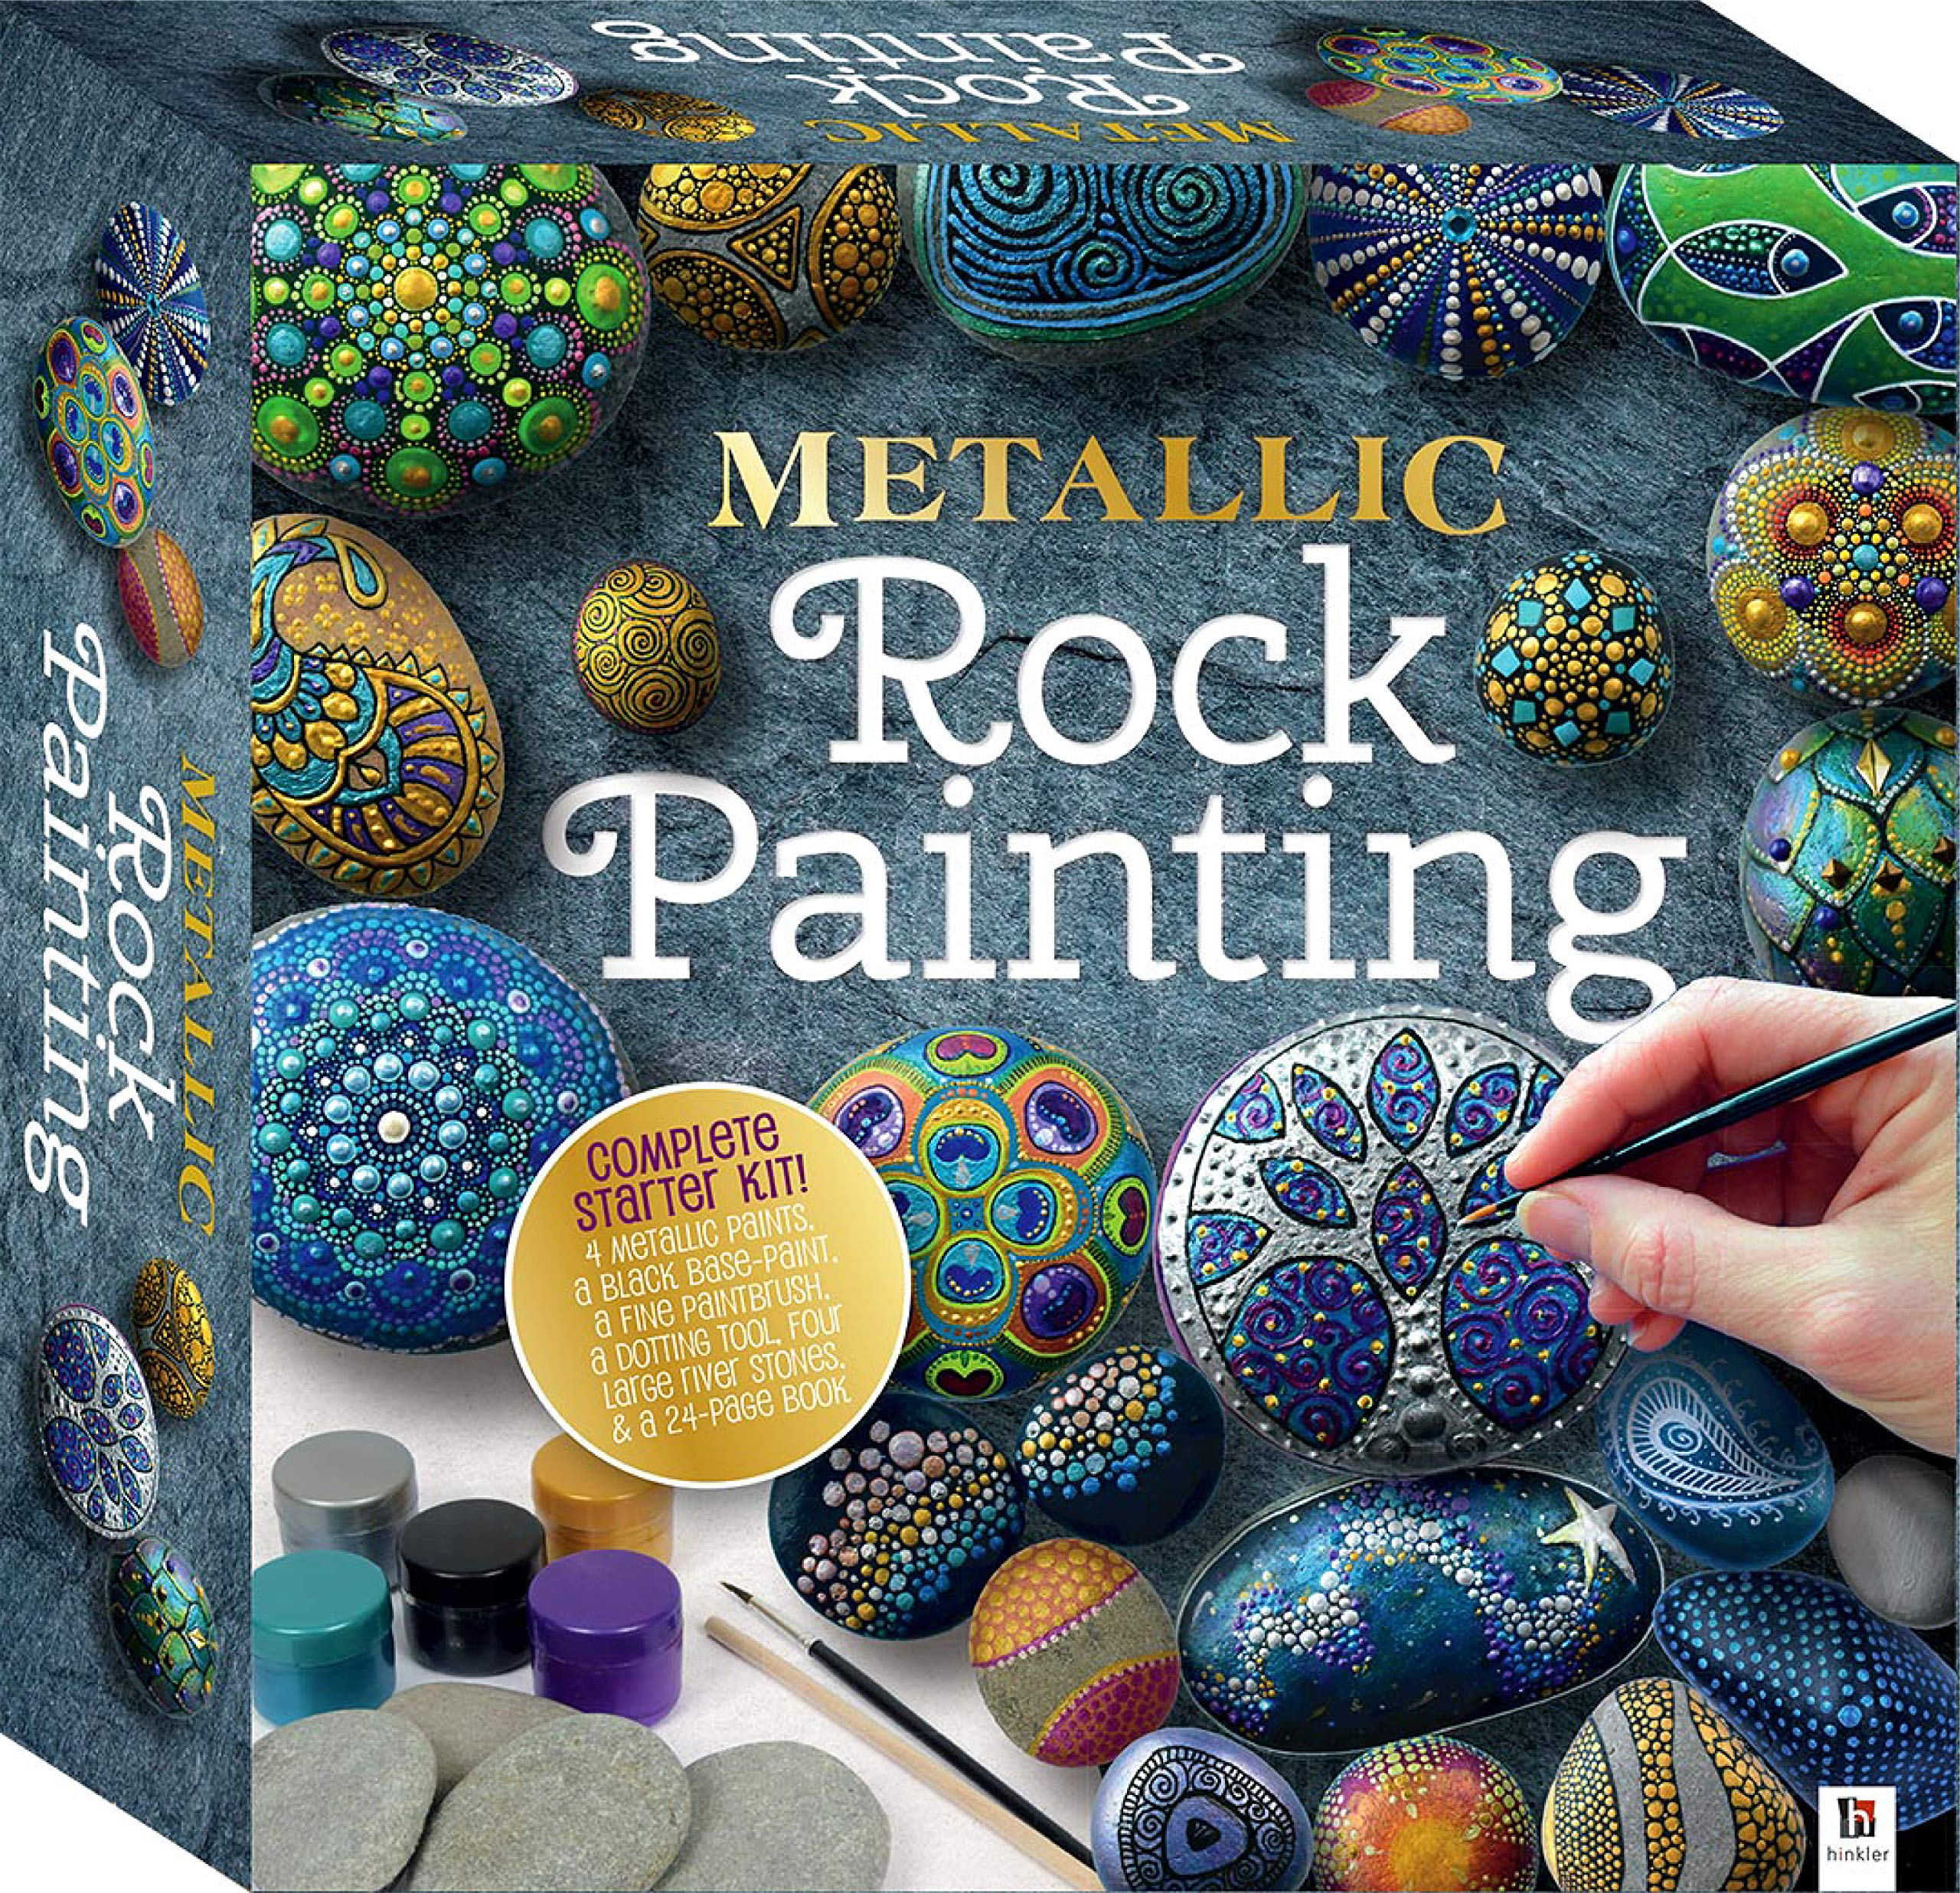 Metallic Rock Painting-This Complete Starter Kit contains all you wish to have to create 8 Luminous Metallic Designs